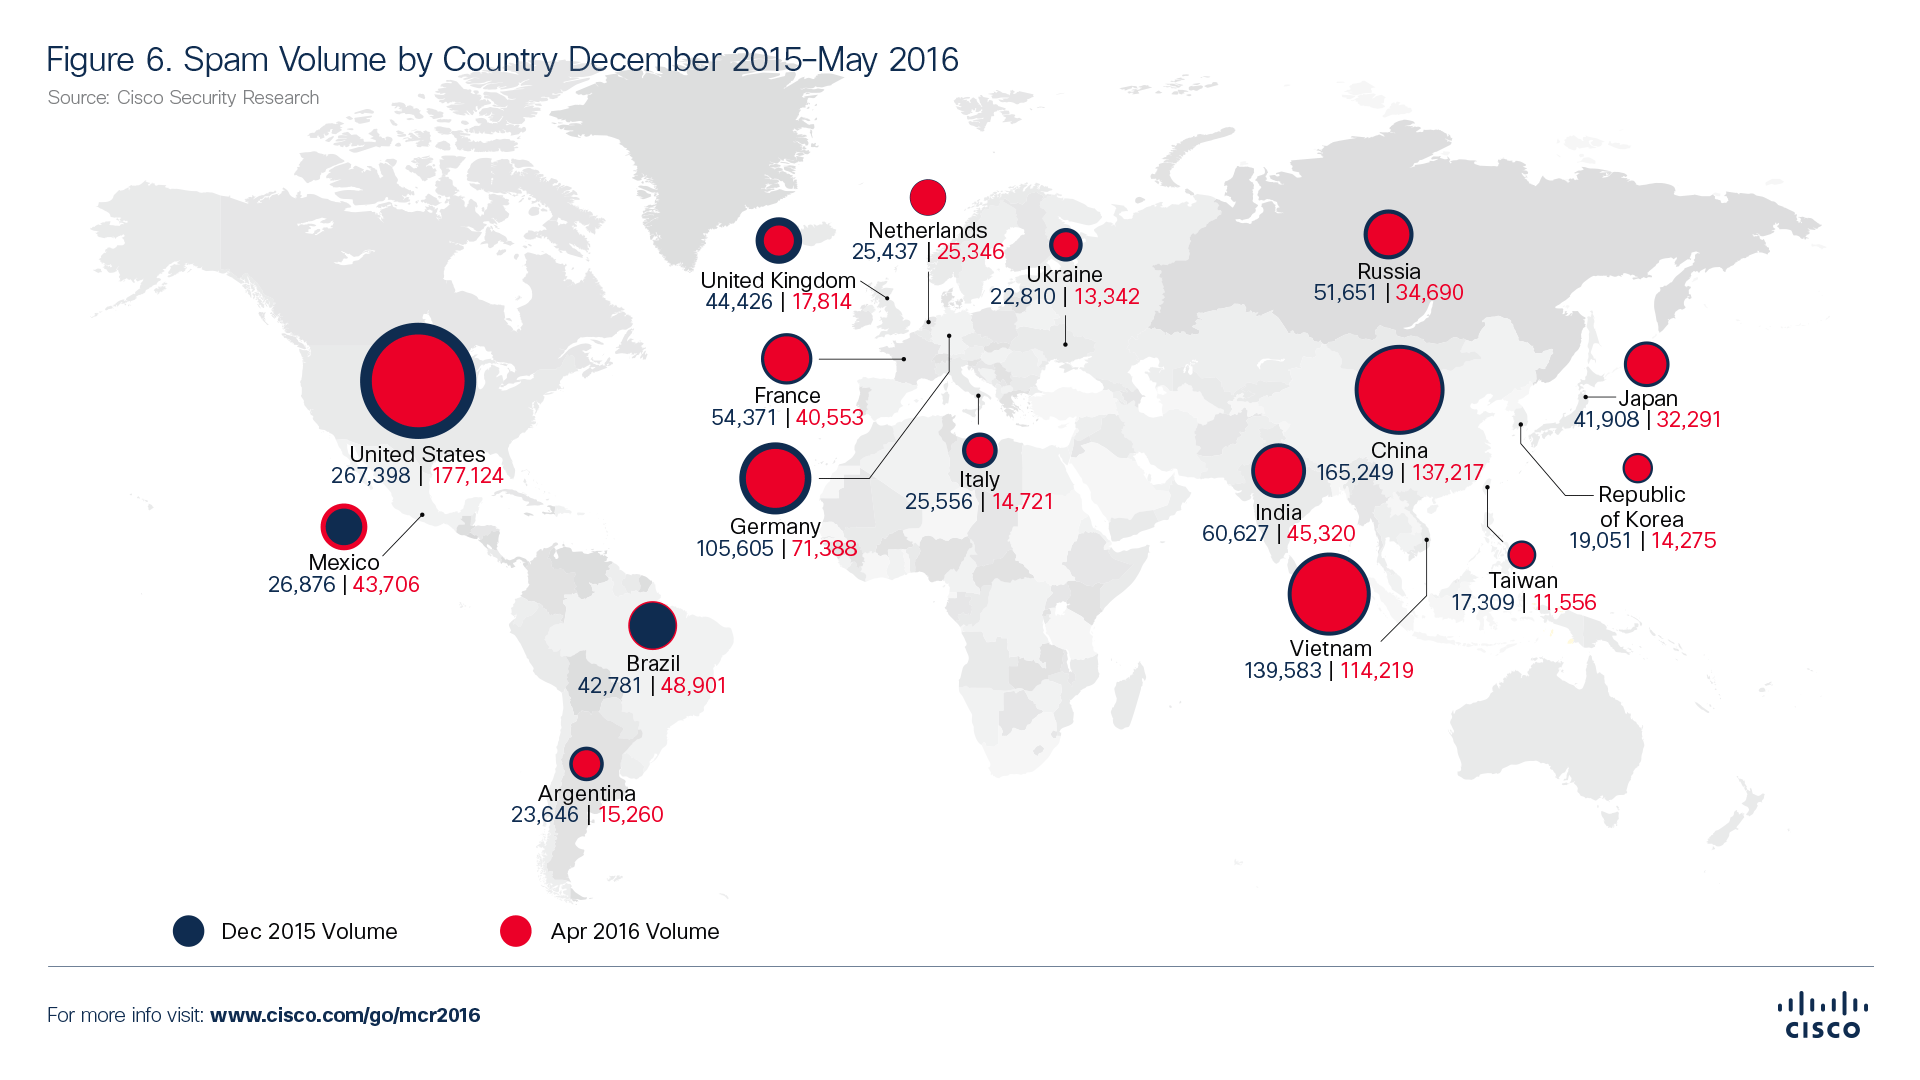 Figure6-Spam-Volume-by-Country-December-2015-May-2016